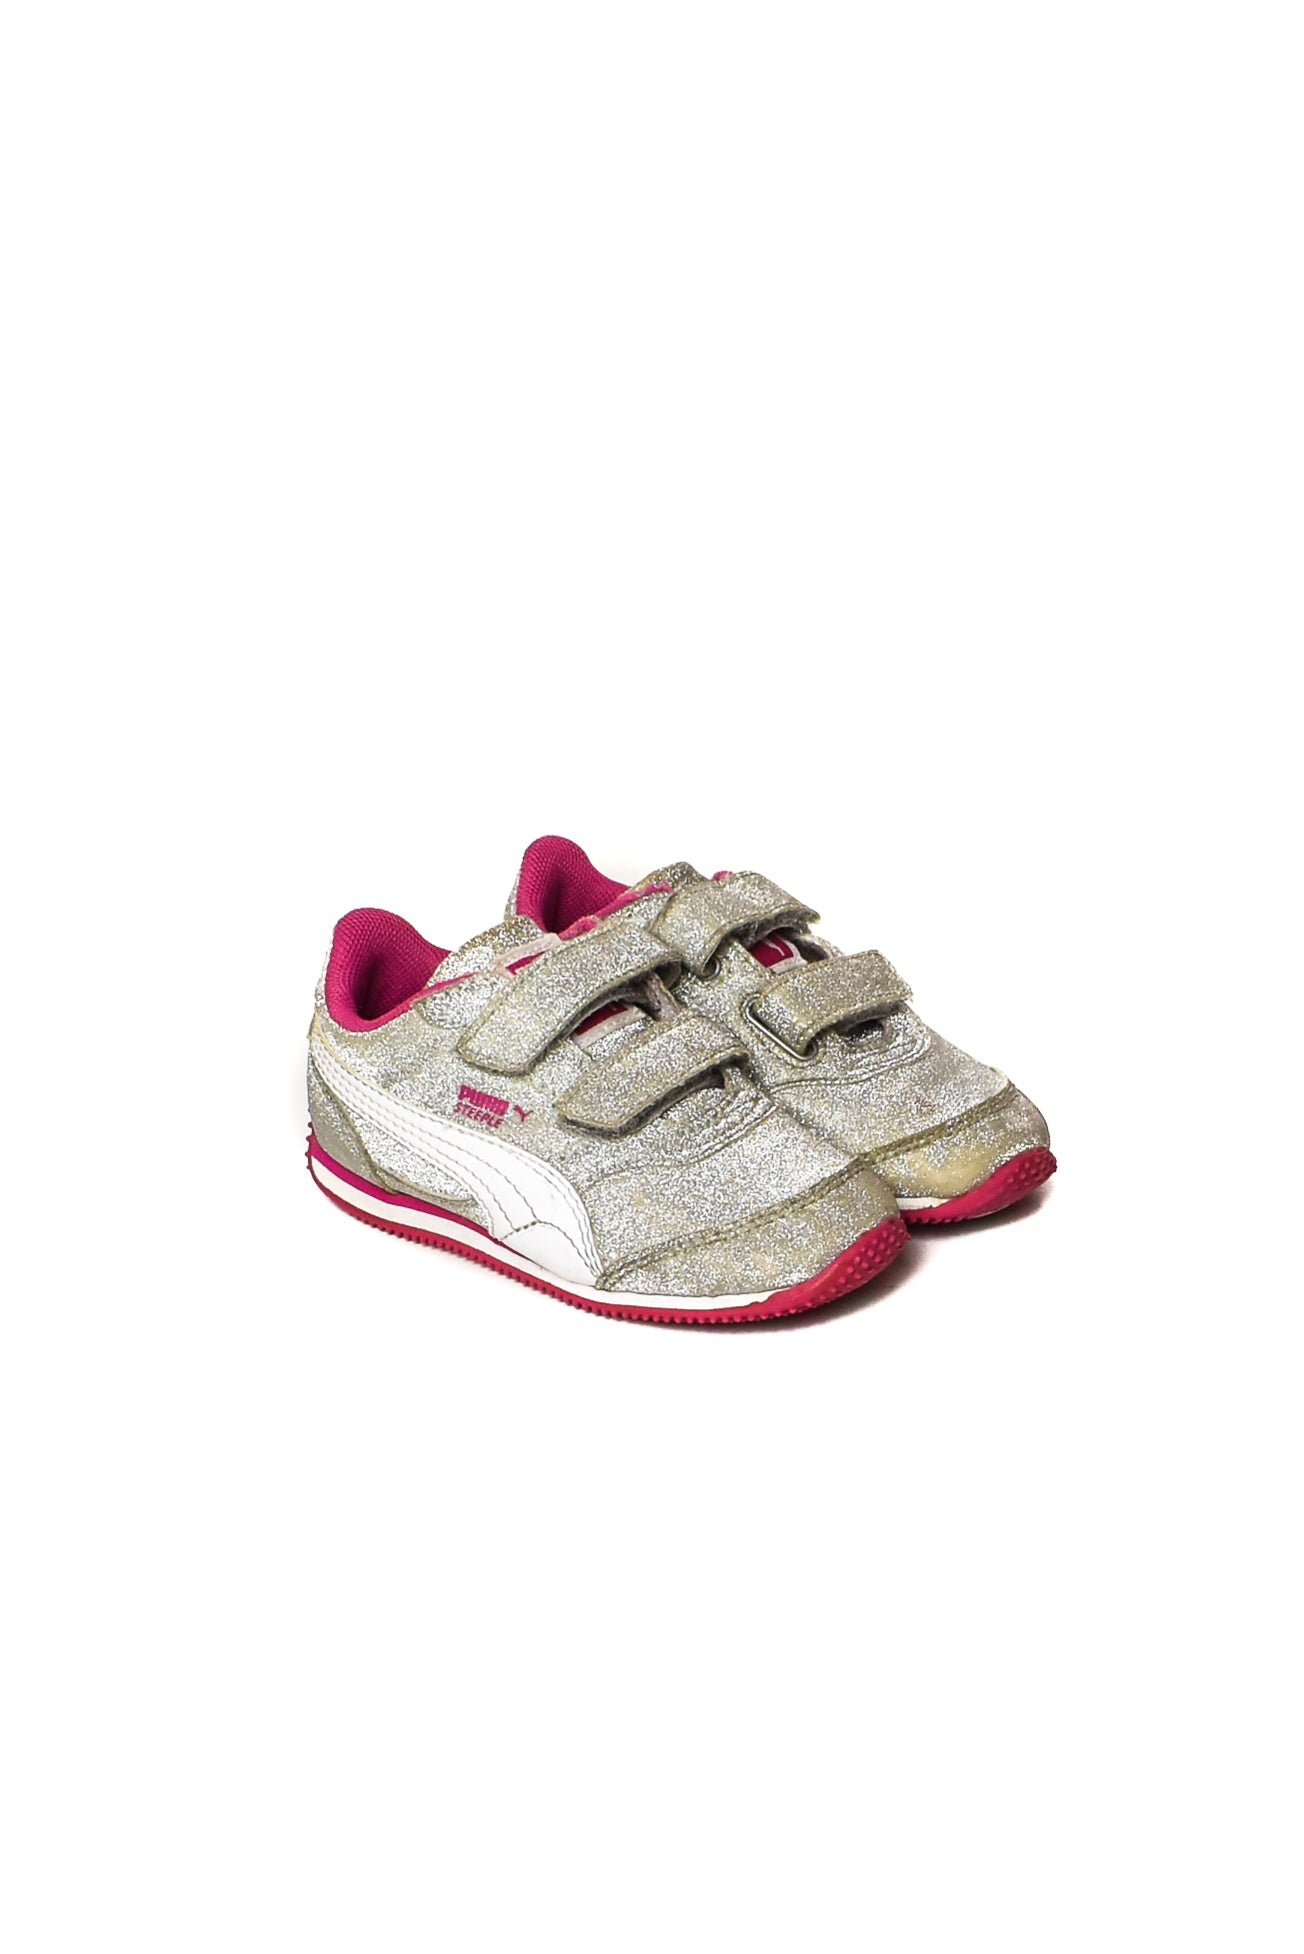 10008414 Puma Baby ~ Shoes 18-24M (EU 22) at Retykle